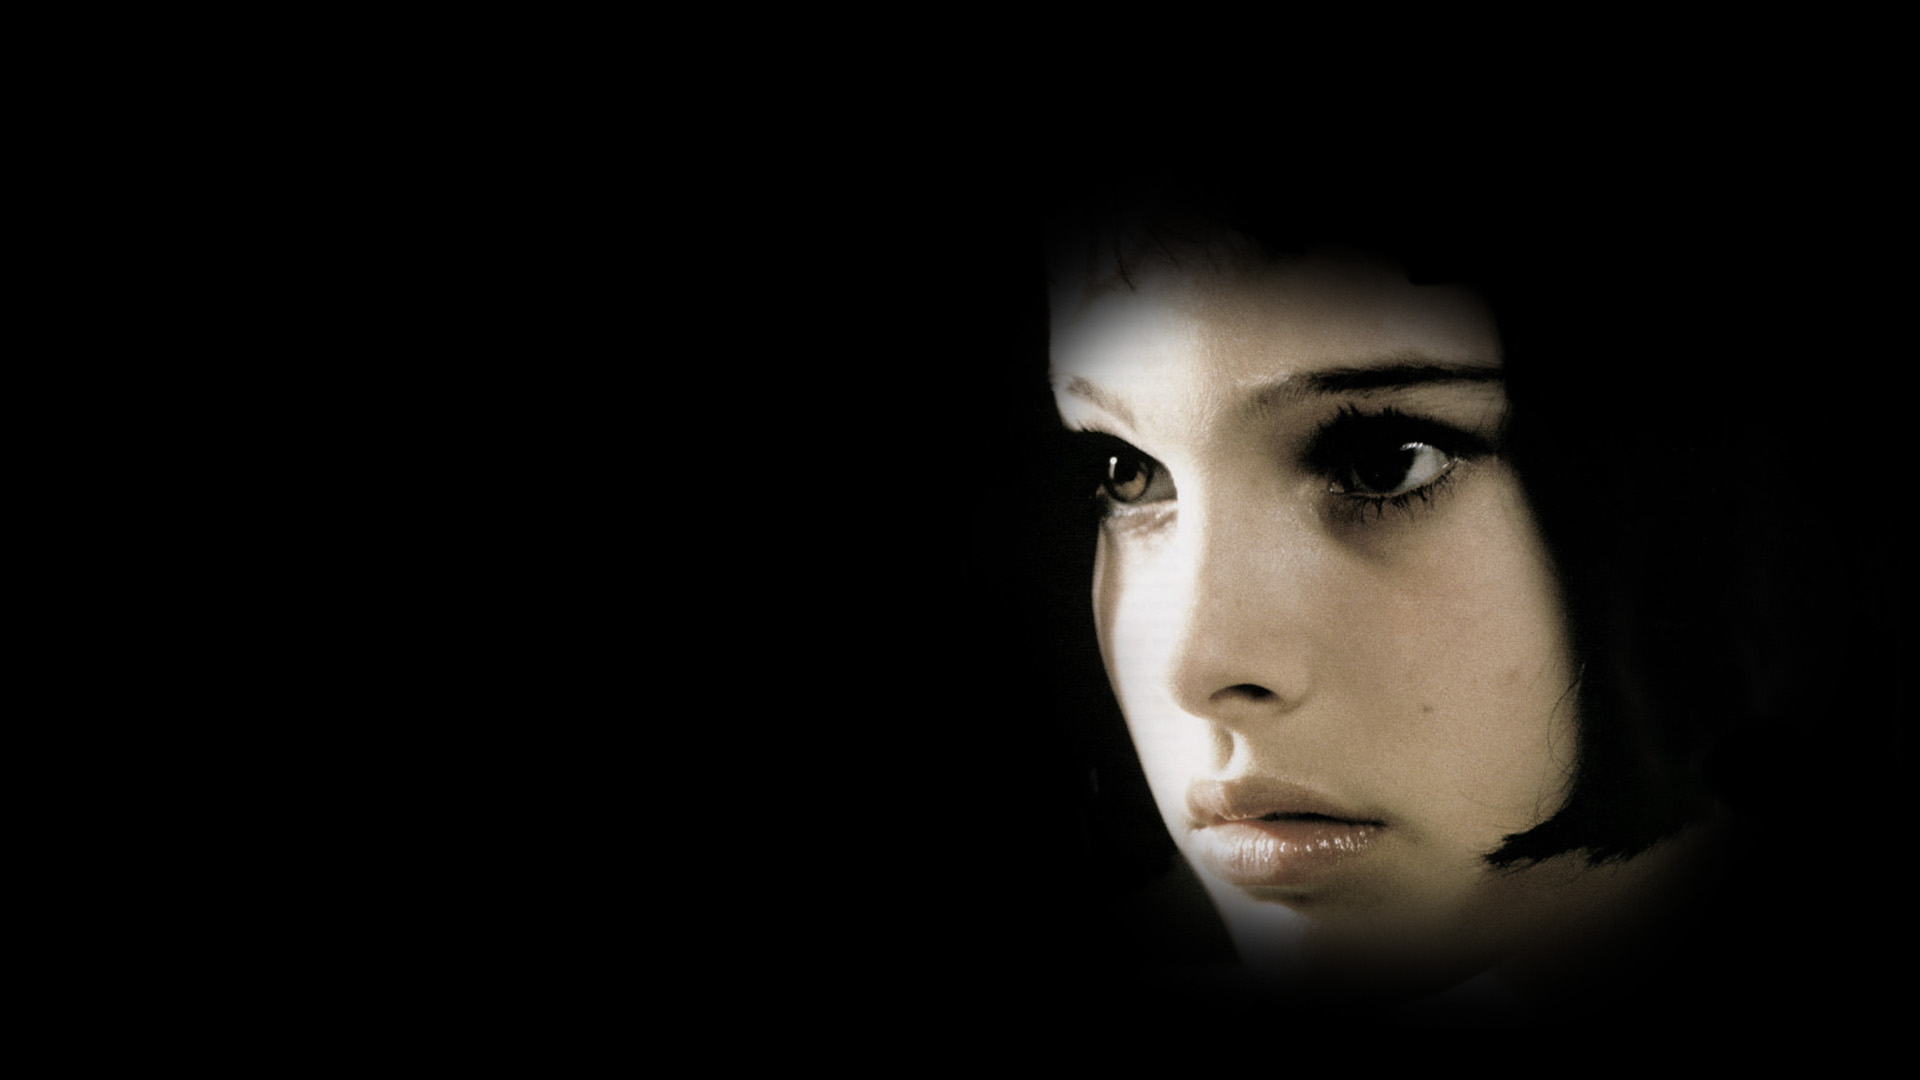 Women actress Natalie Portman Leon The Professional Mathilda faces